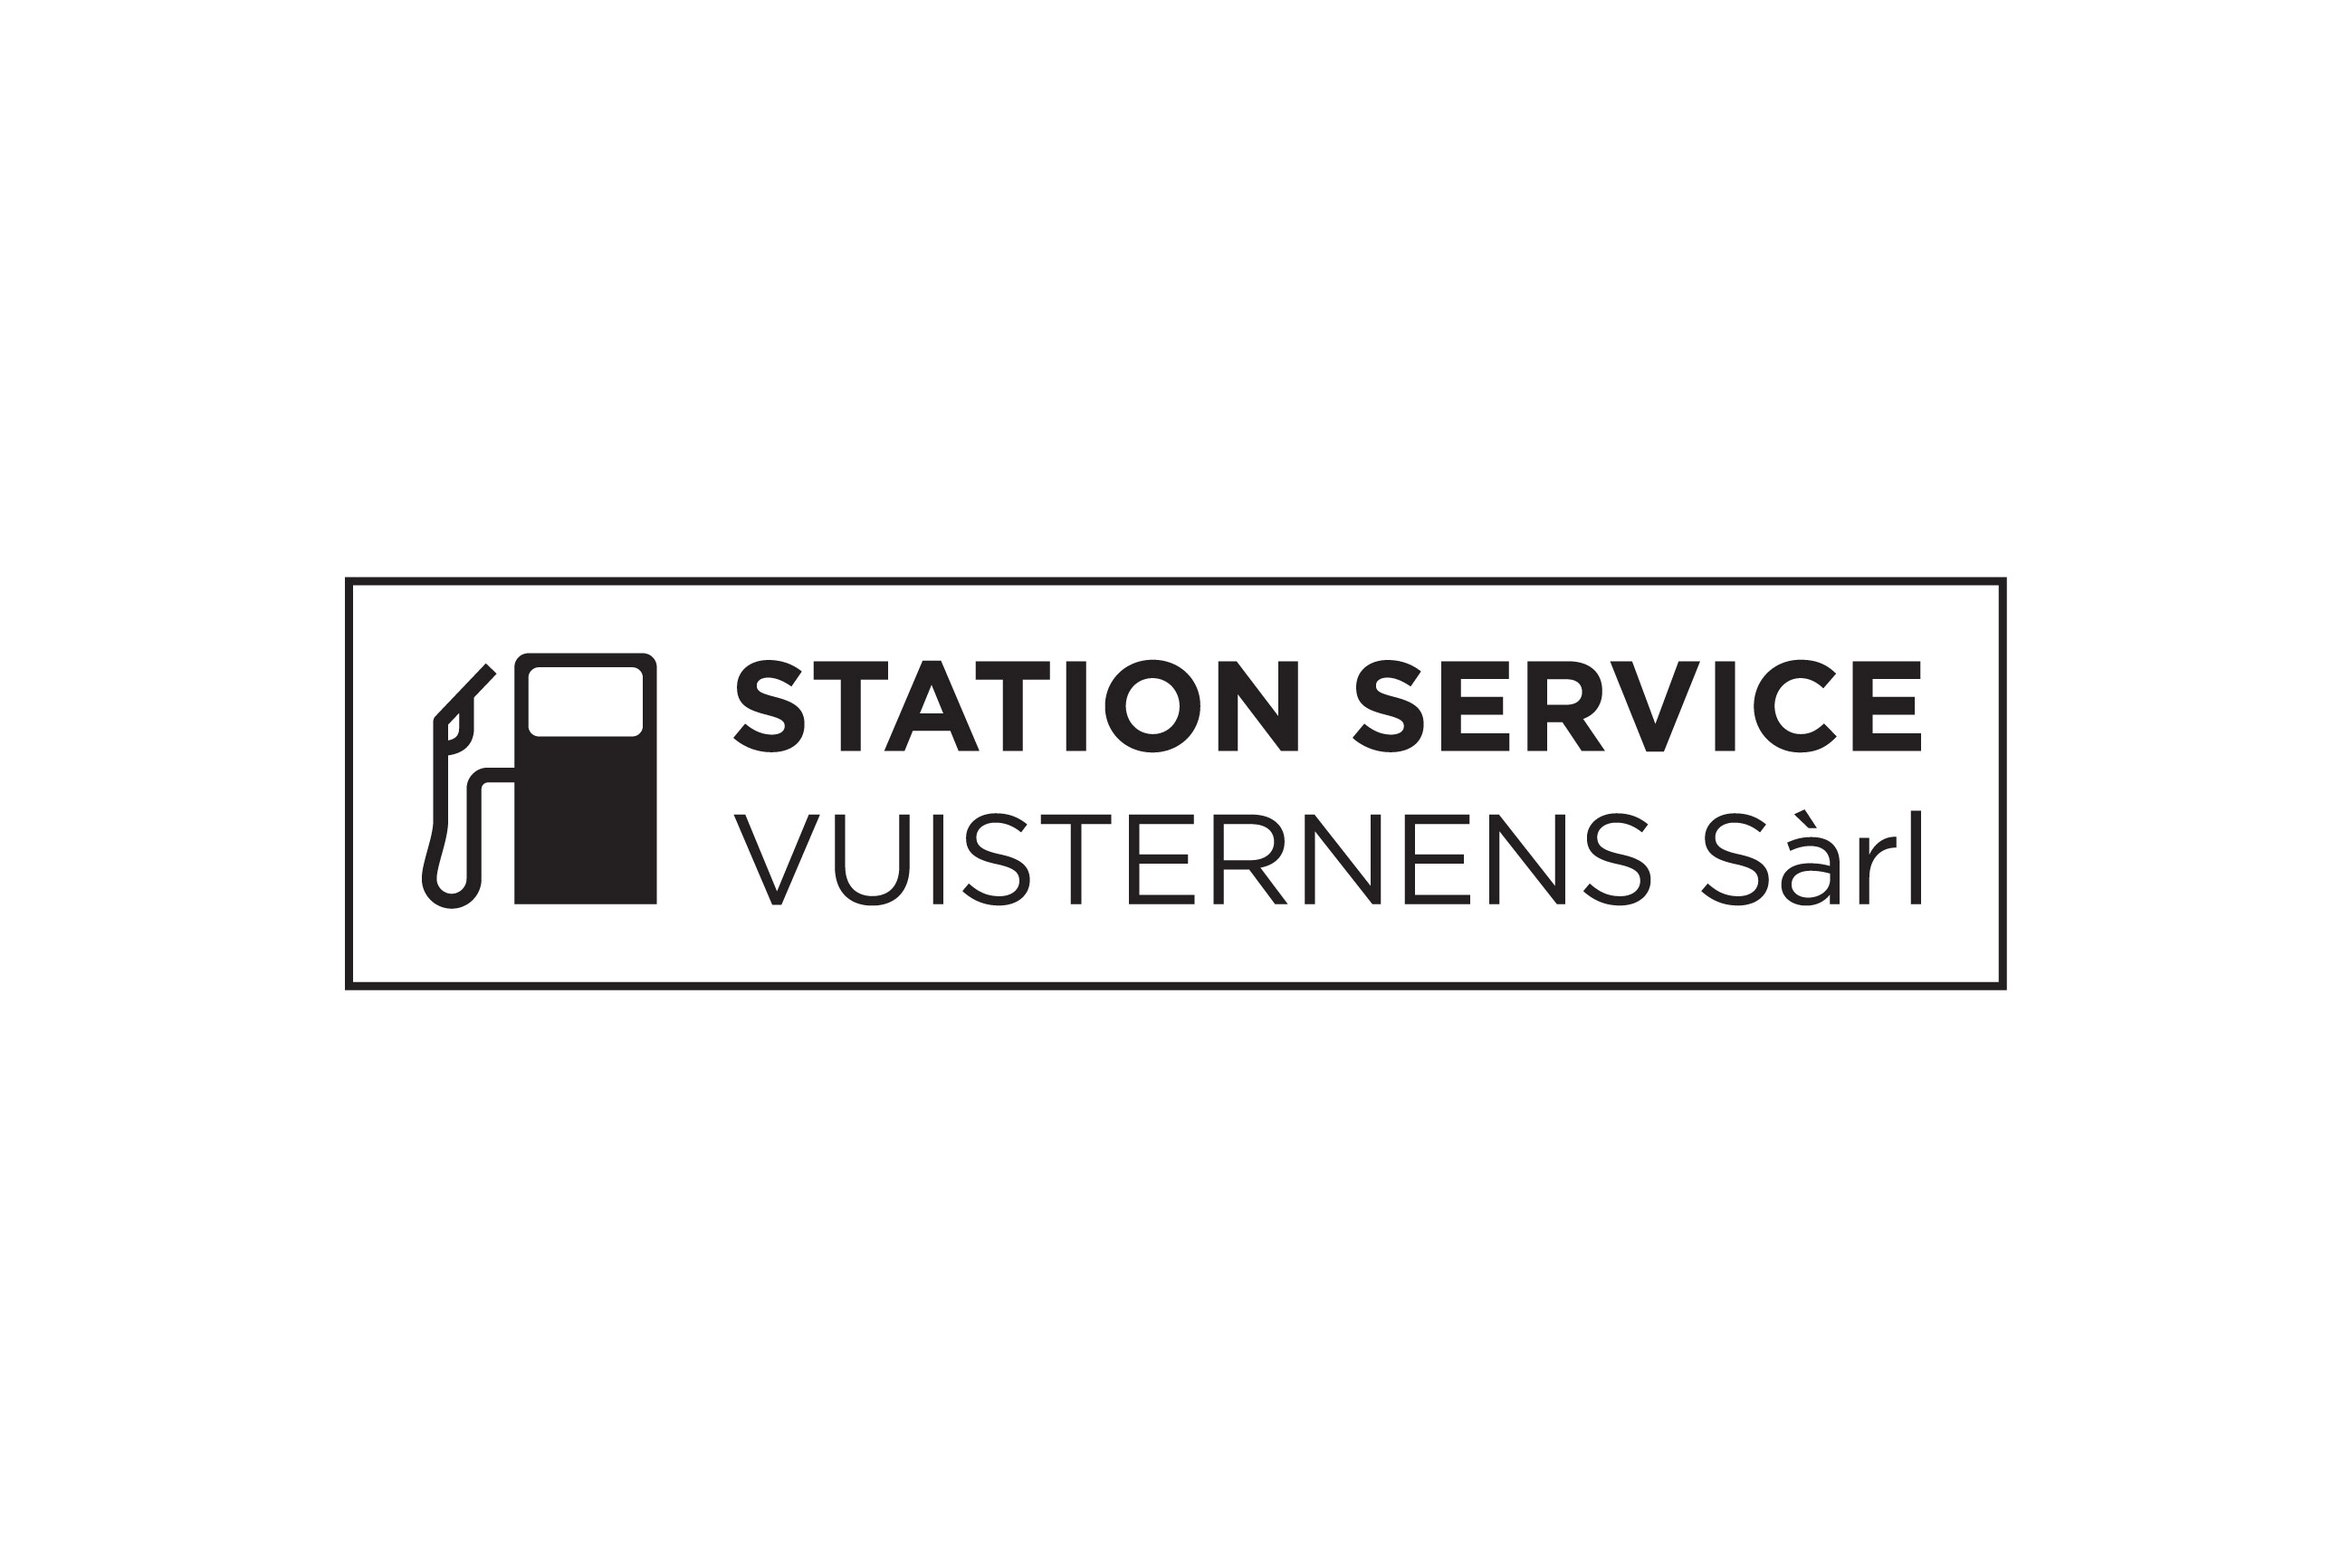 Station Service Vuisternens